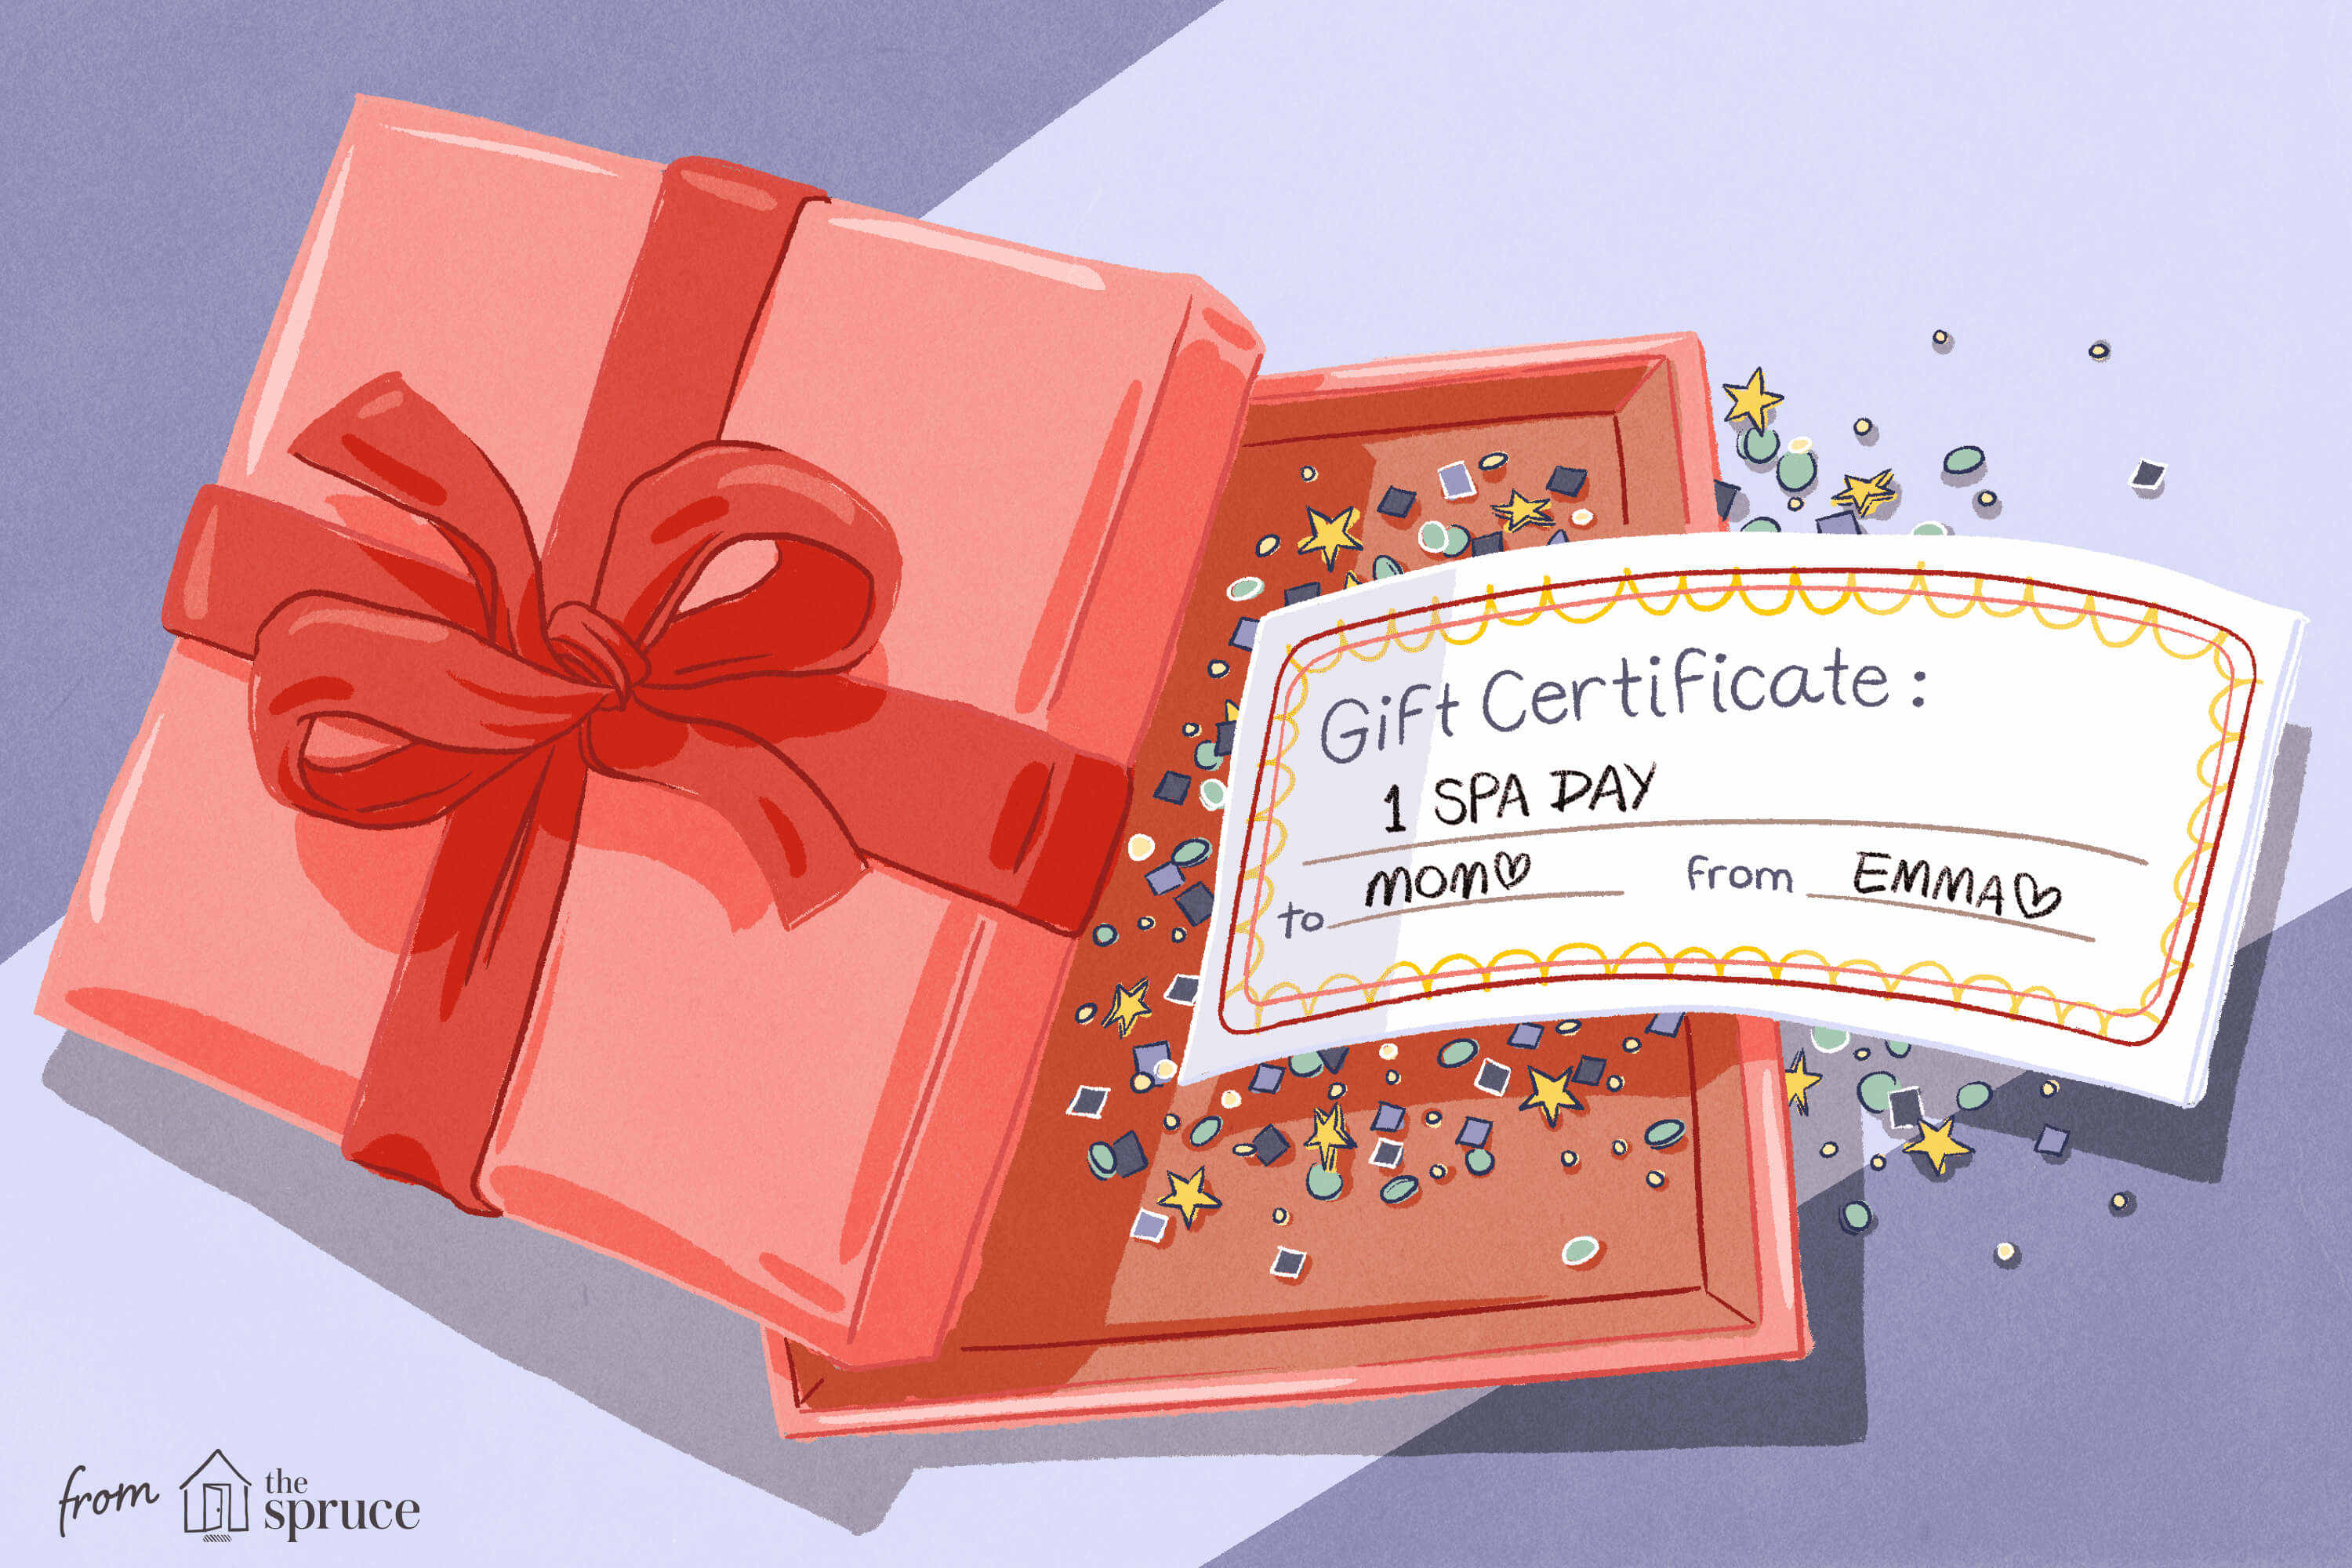 Free Gift Certificate Templates You Can Customize In Gift Certificate Template Publisher